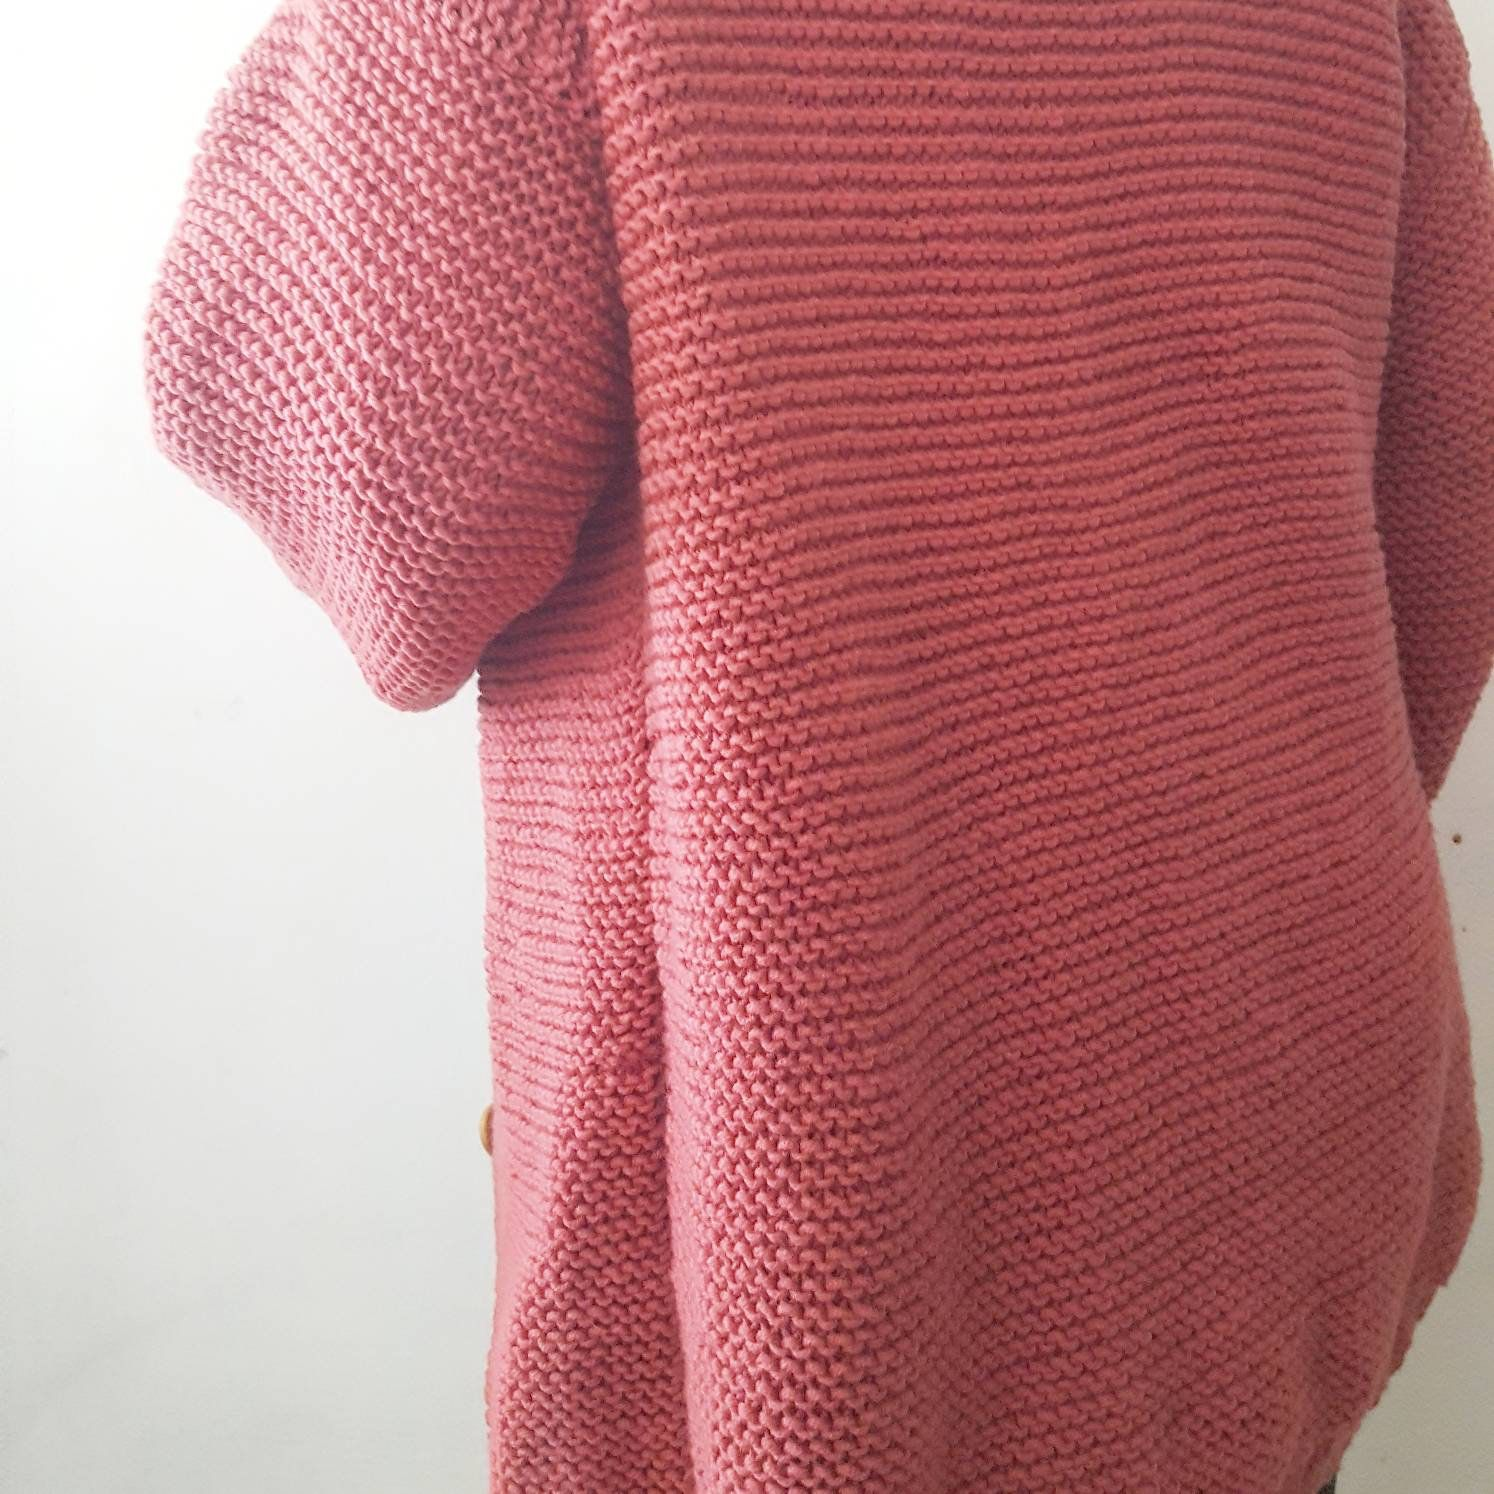 Chunky cardigan; slouchy cardigan; knitgifts; simple knit; big knit; cozy sweater; sweater weather; country fashion; trend; red cardigan